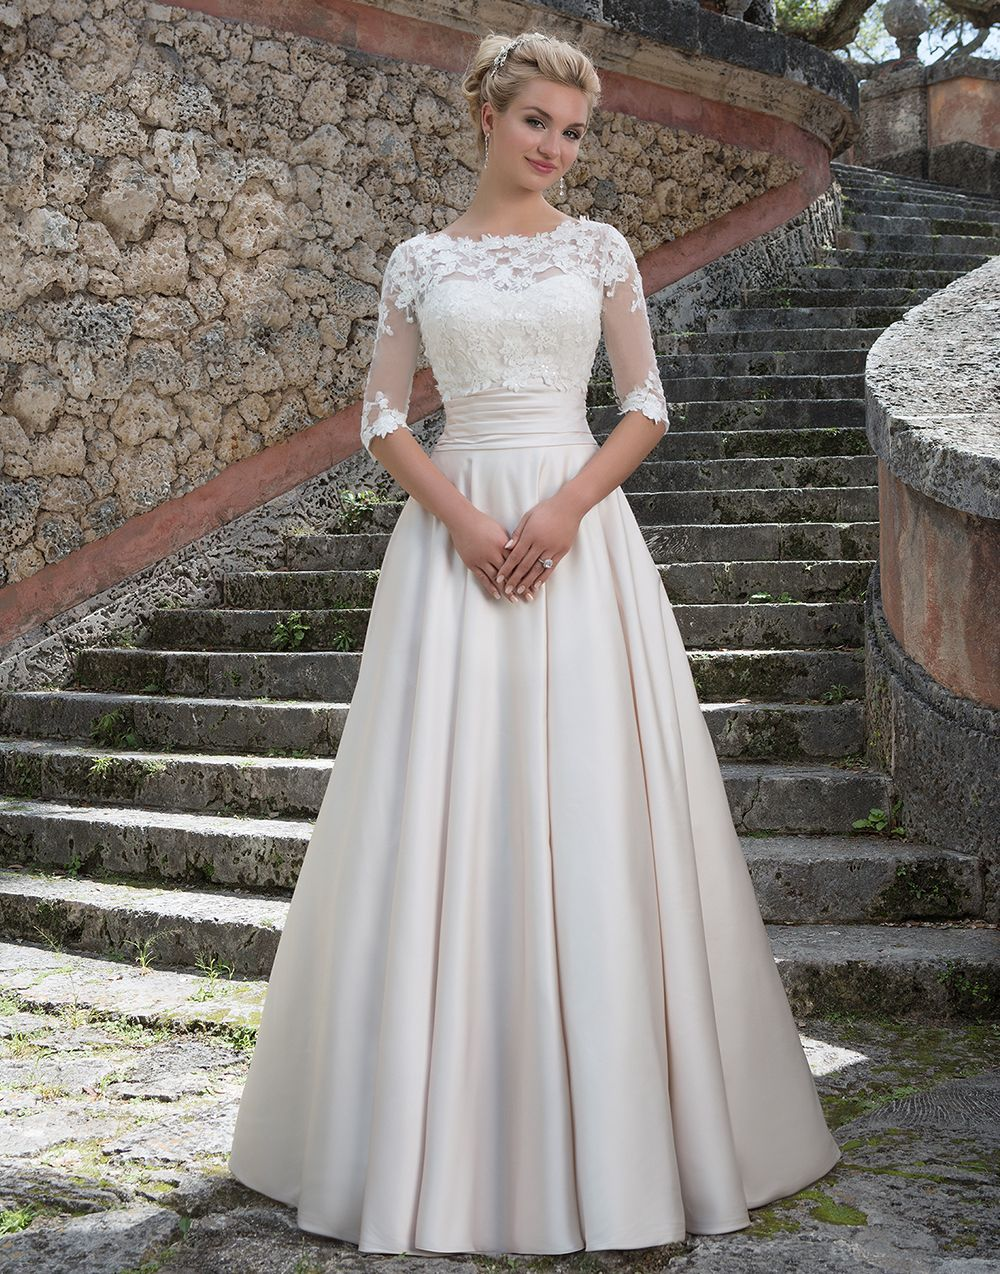 Sincerity wedding dress style this grace kelly inspired ball